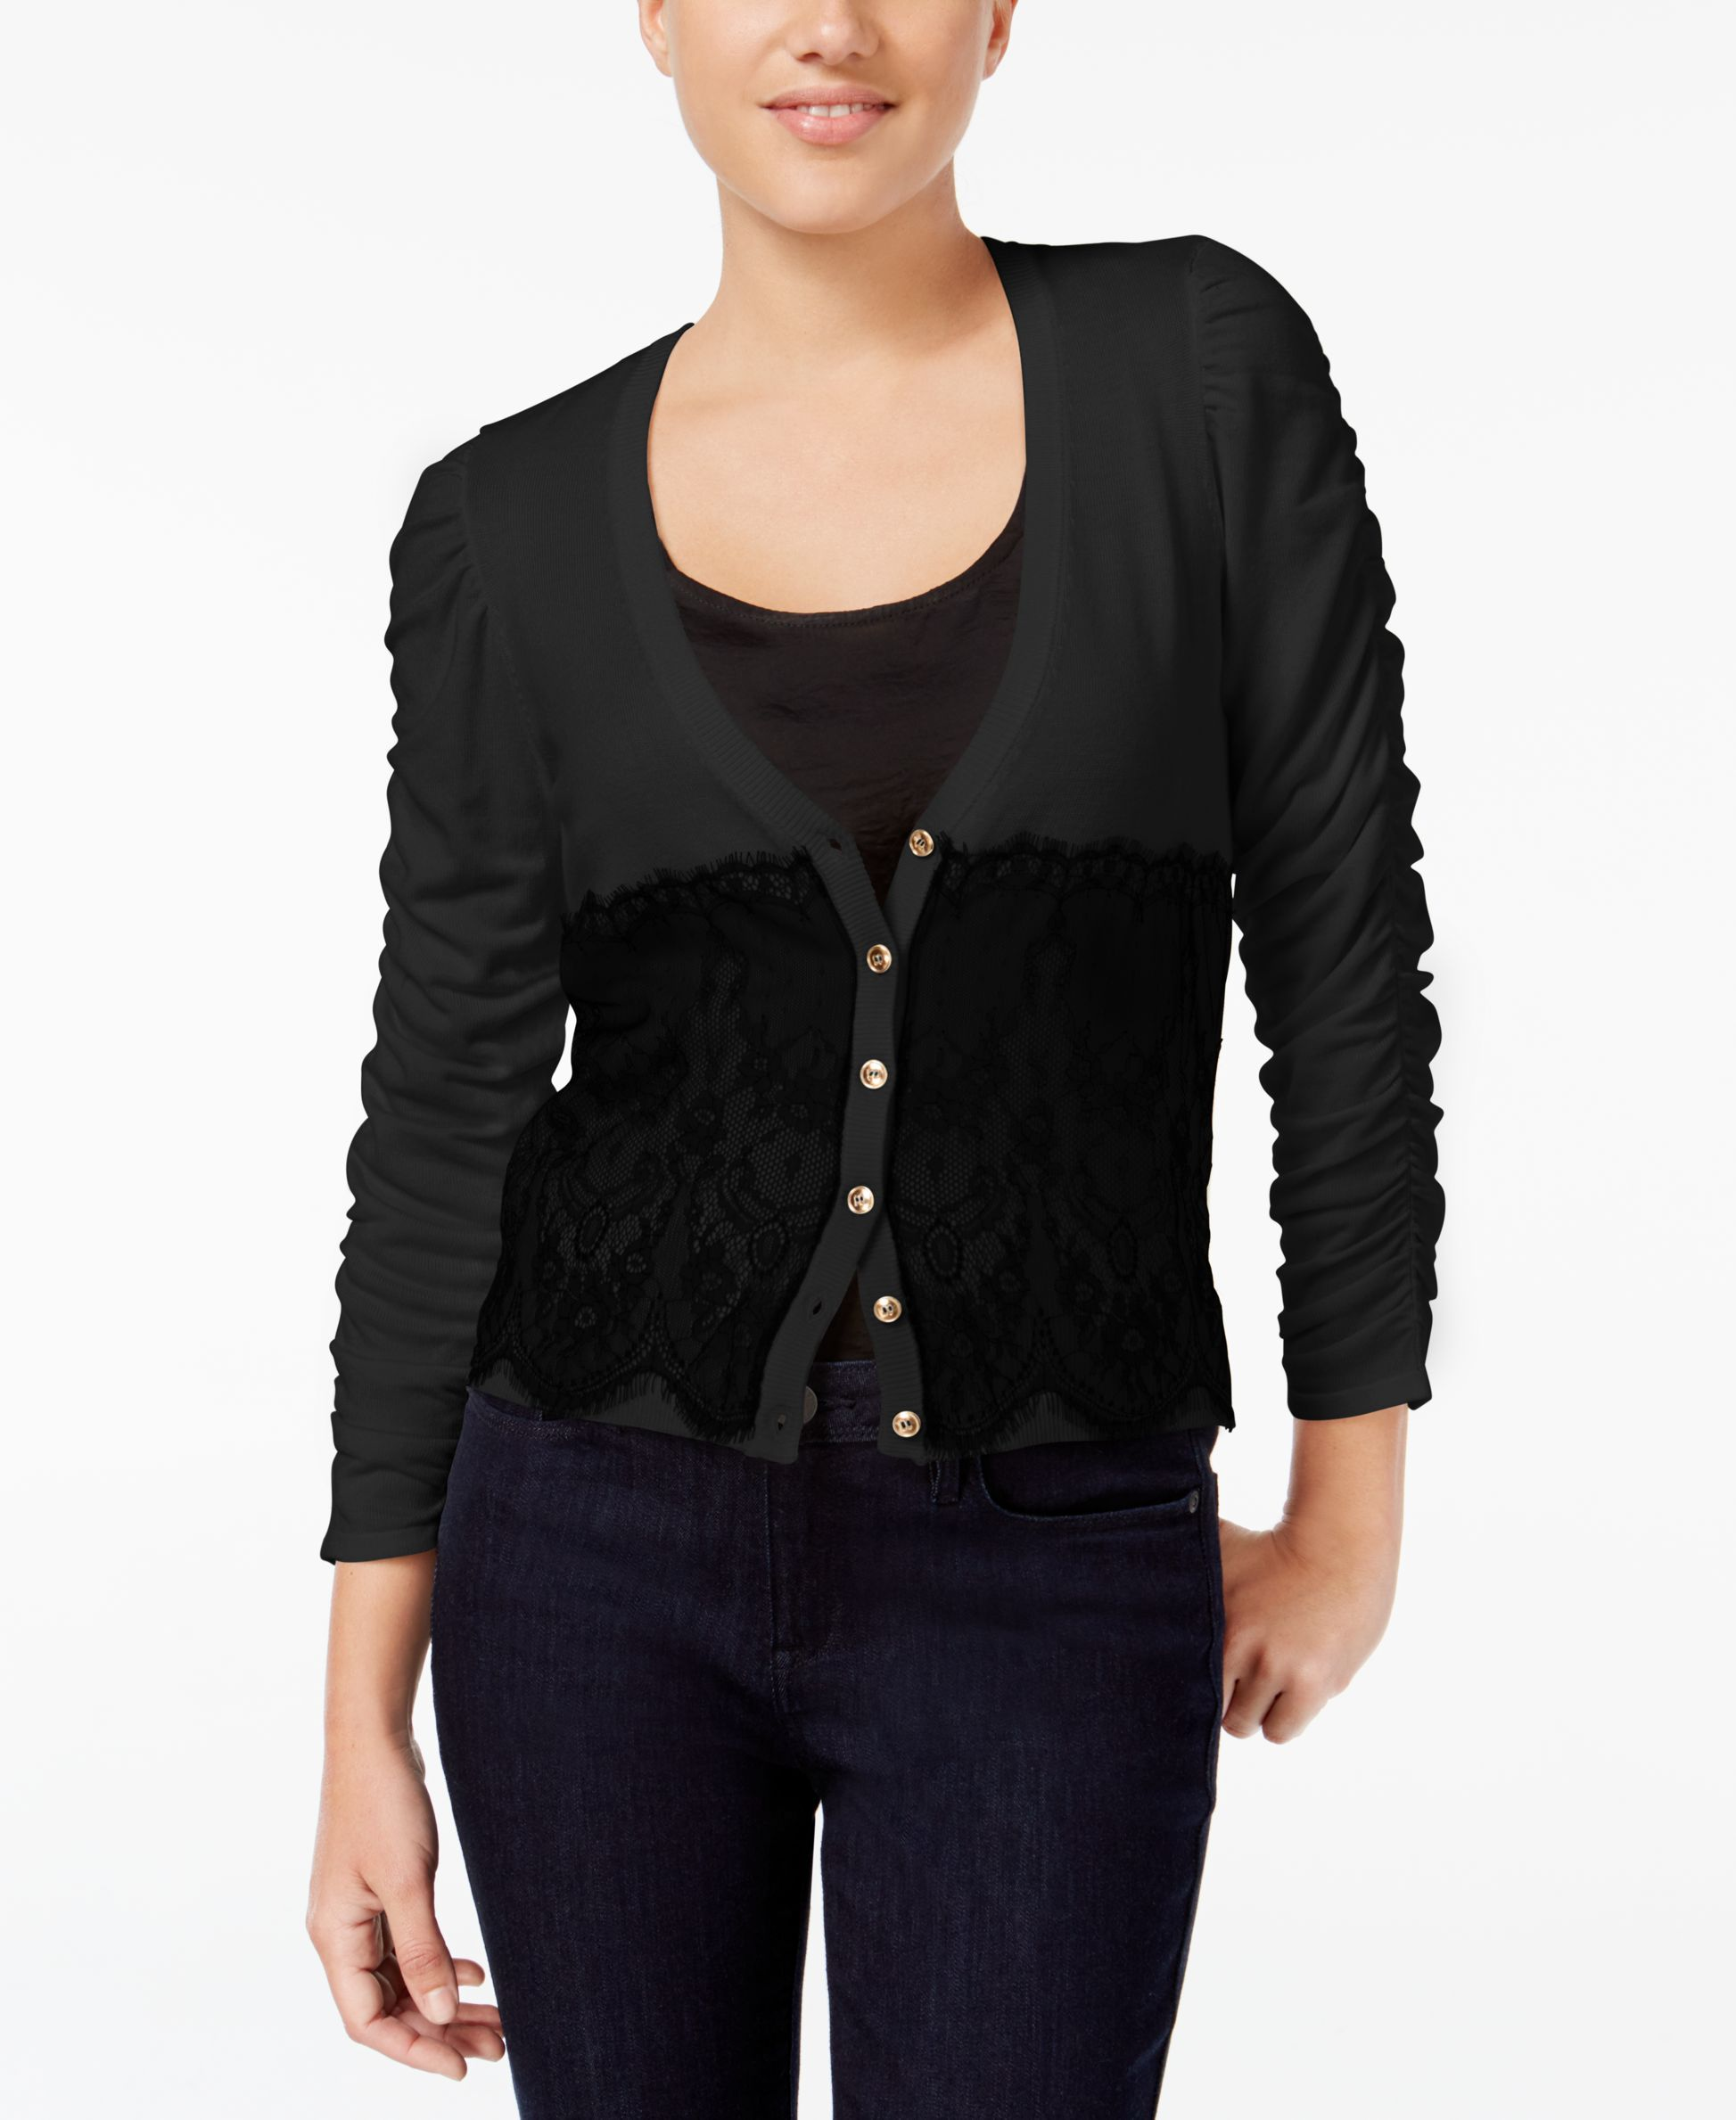 Xoxo Juniors' Ruched-Sleeve Lace Cardigan | Products | Pinterest ...